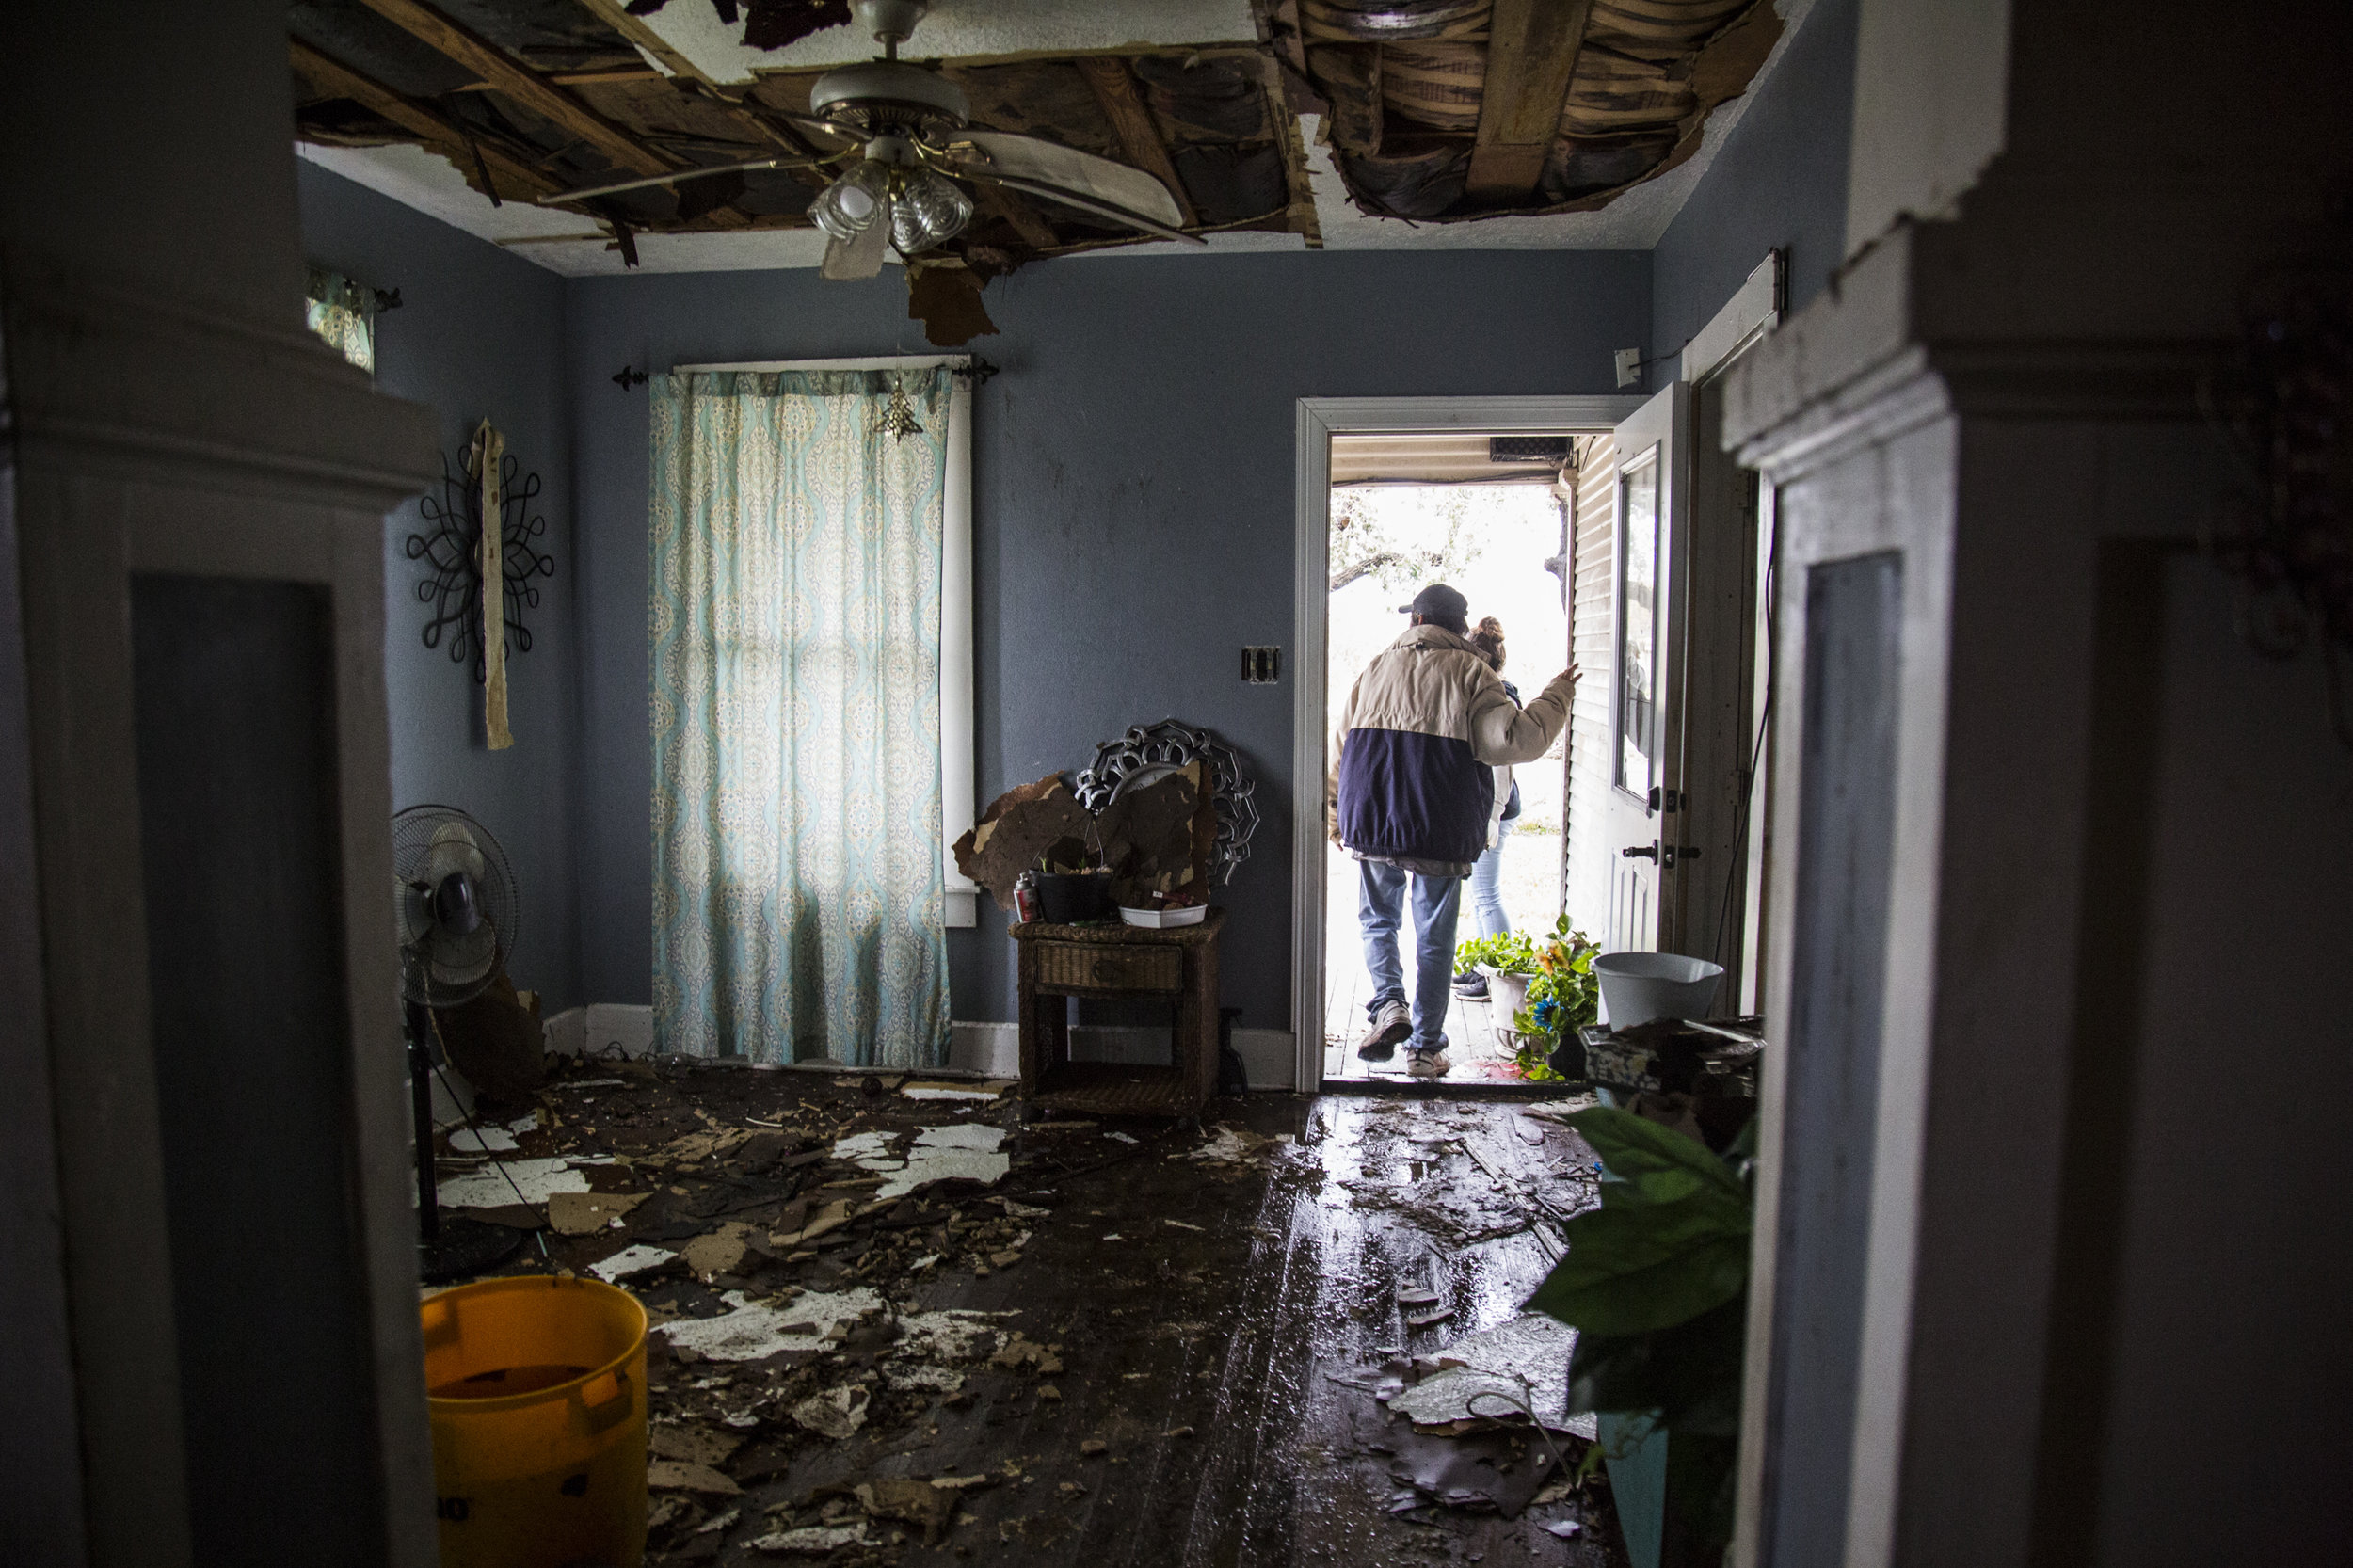 Lucas Garcia, 60, walks through his destroyed home in Refugio, Texas. Garcia and seven other family members along with seven animals rode out Hurricane Harvey in a single room in the home.